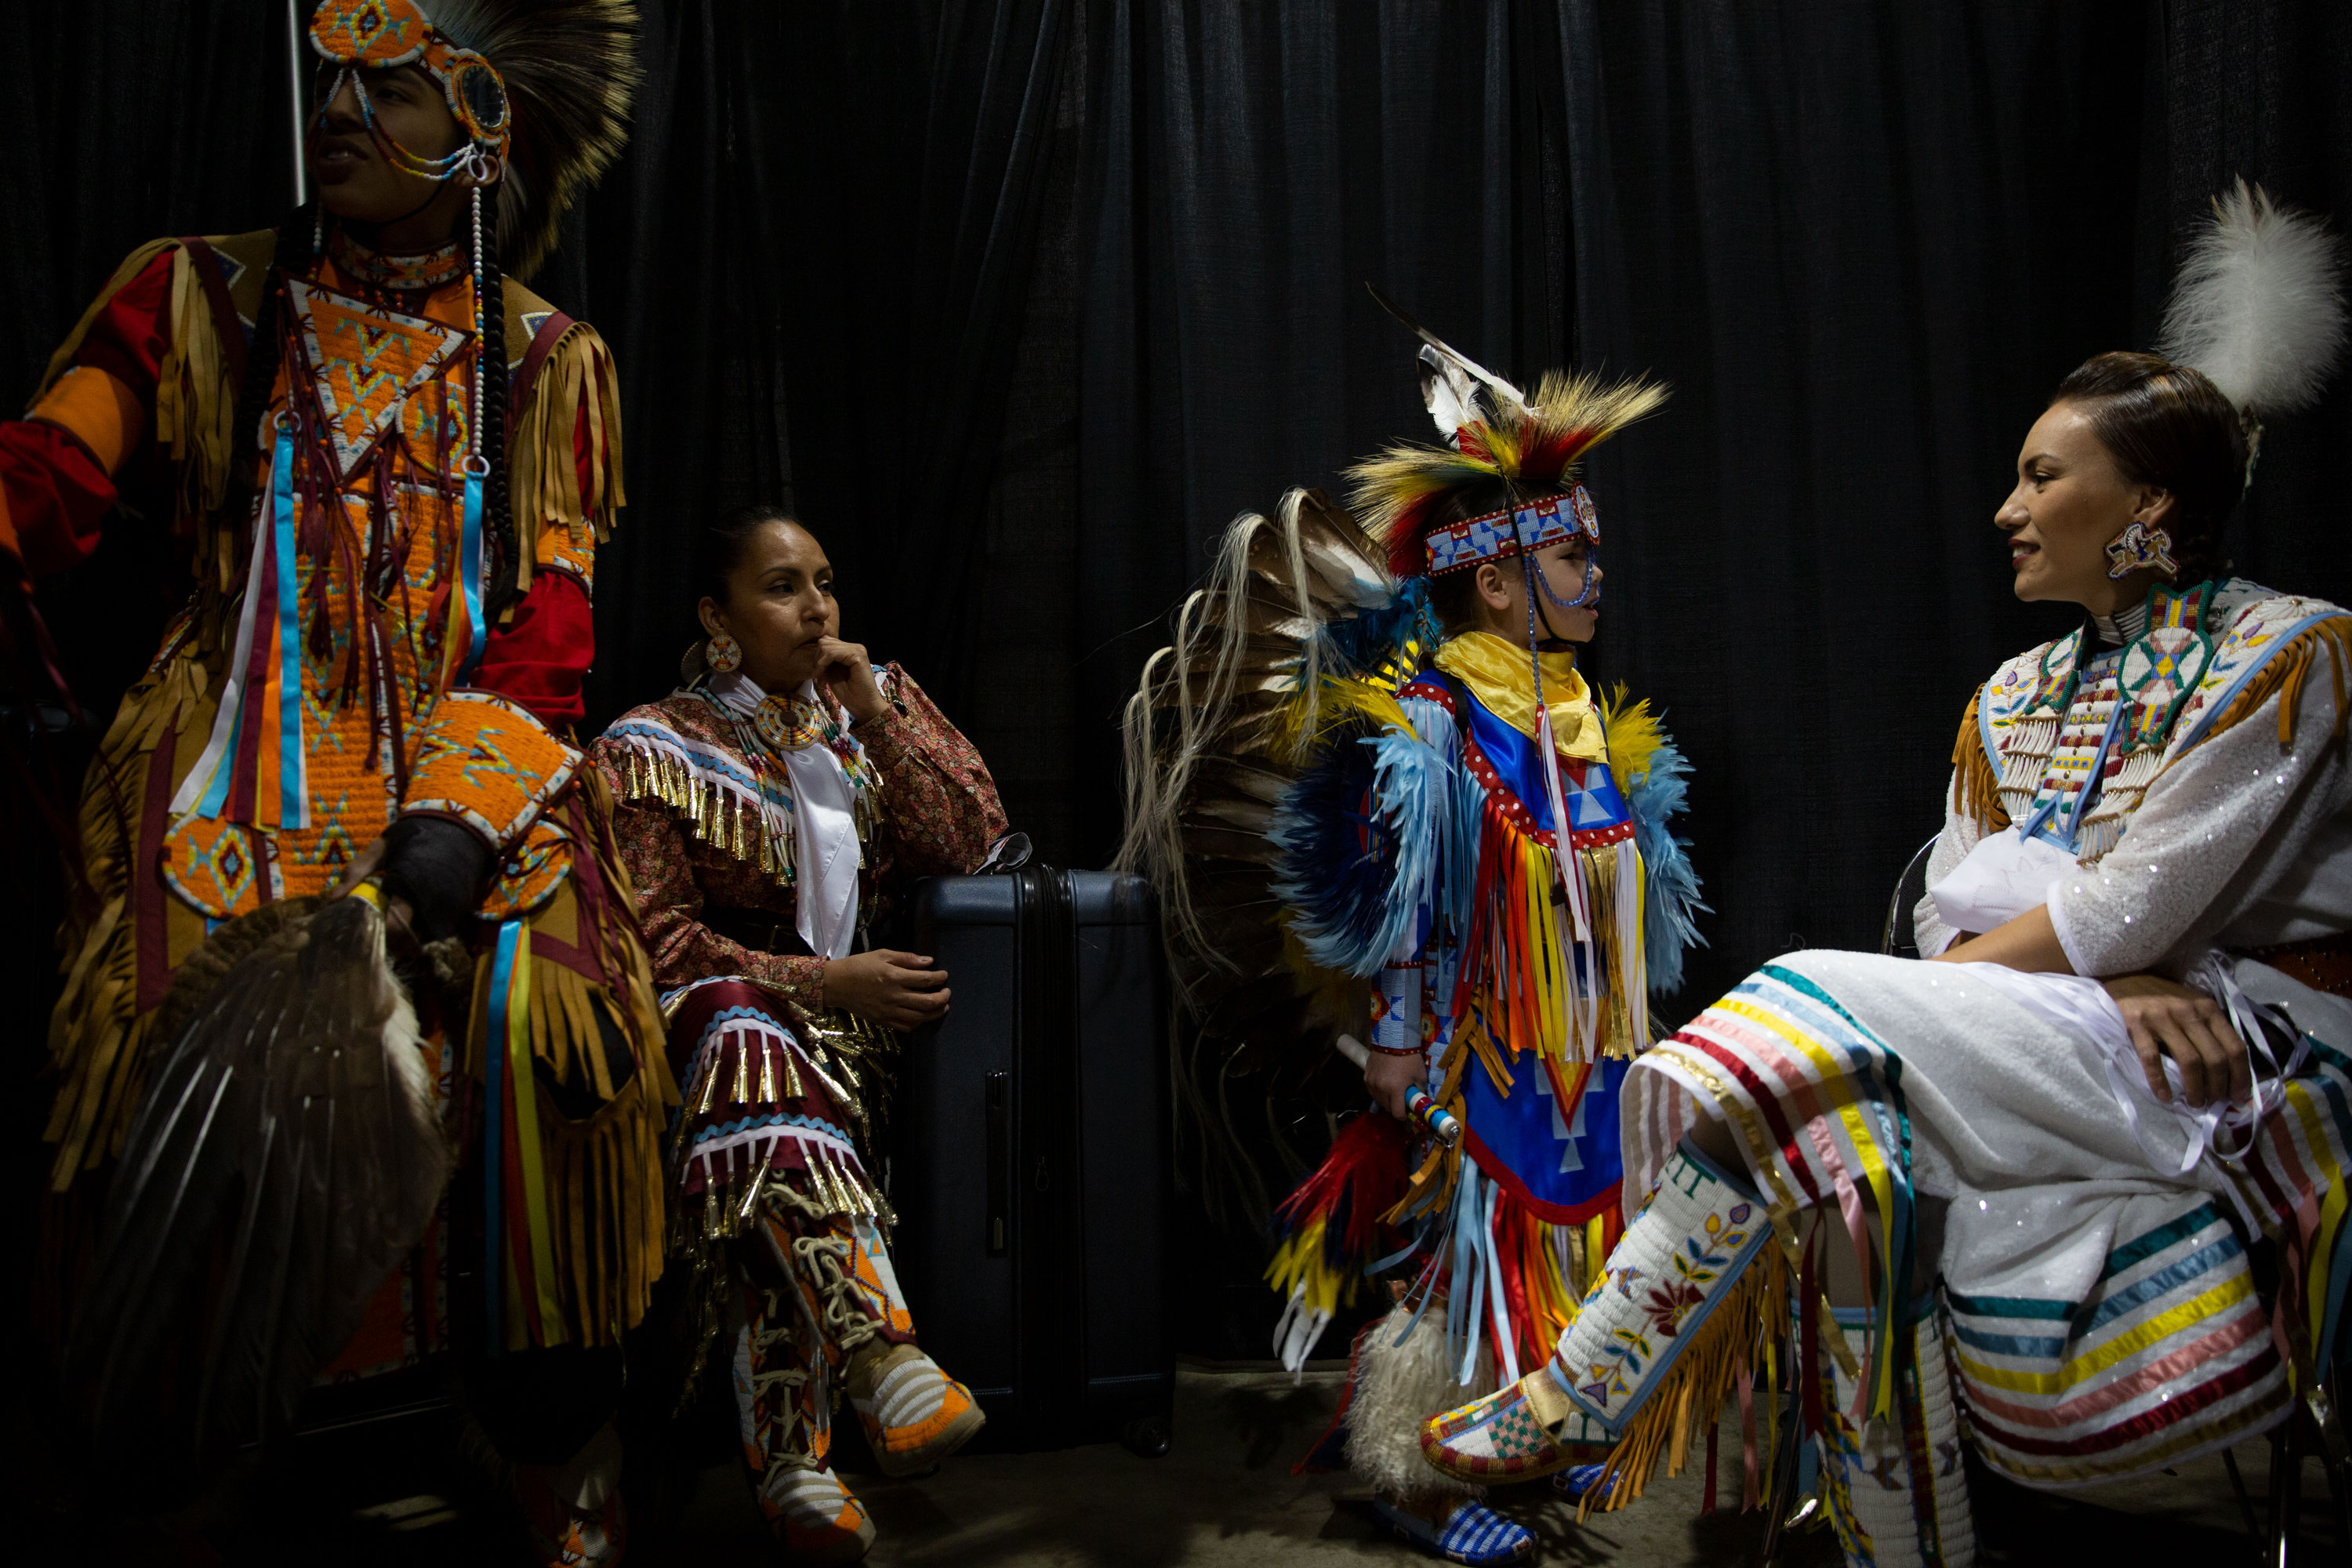 From left, Wambdi Clairmont,Kiva Trujillo,Omani DennyClairmontand Tanksi Clairmontwait backstage at theDenver Travel and Adventure Show at the Colorado Convention Center on Feb. The dancers will perform at the Denver March Pow Wow March 22-24.